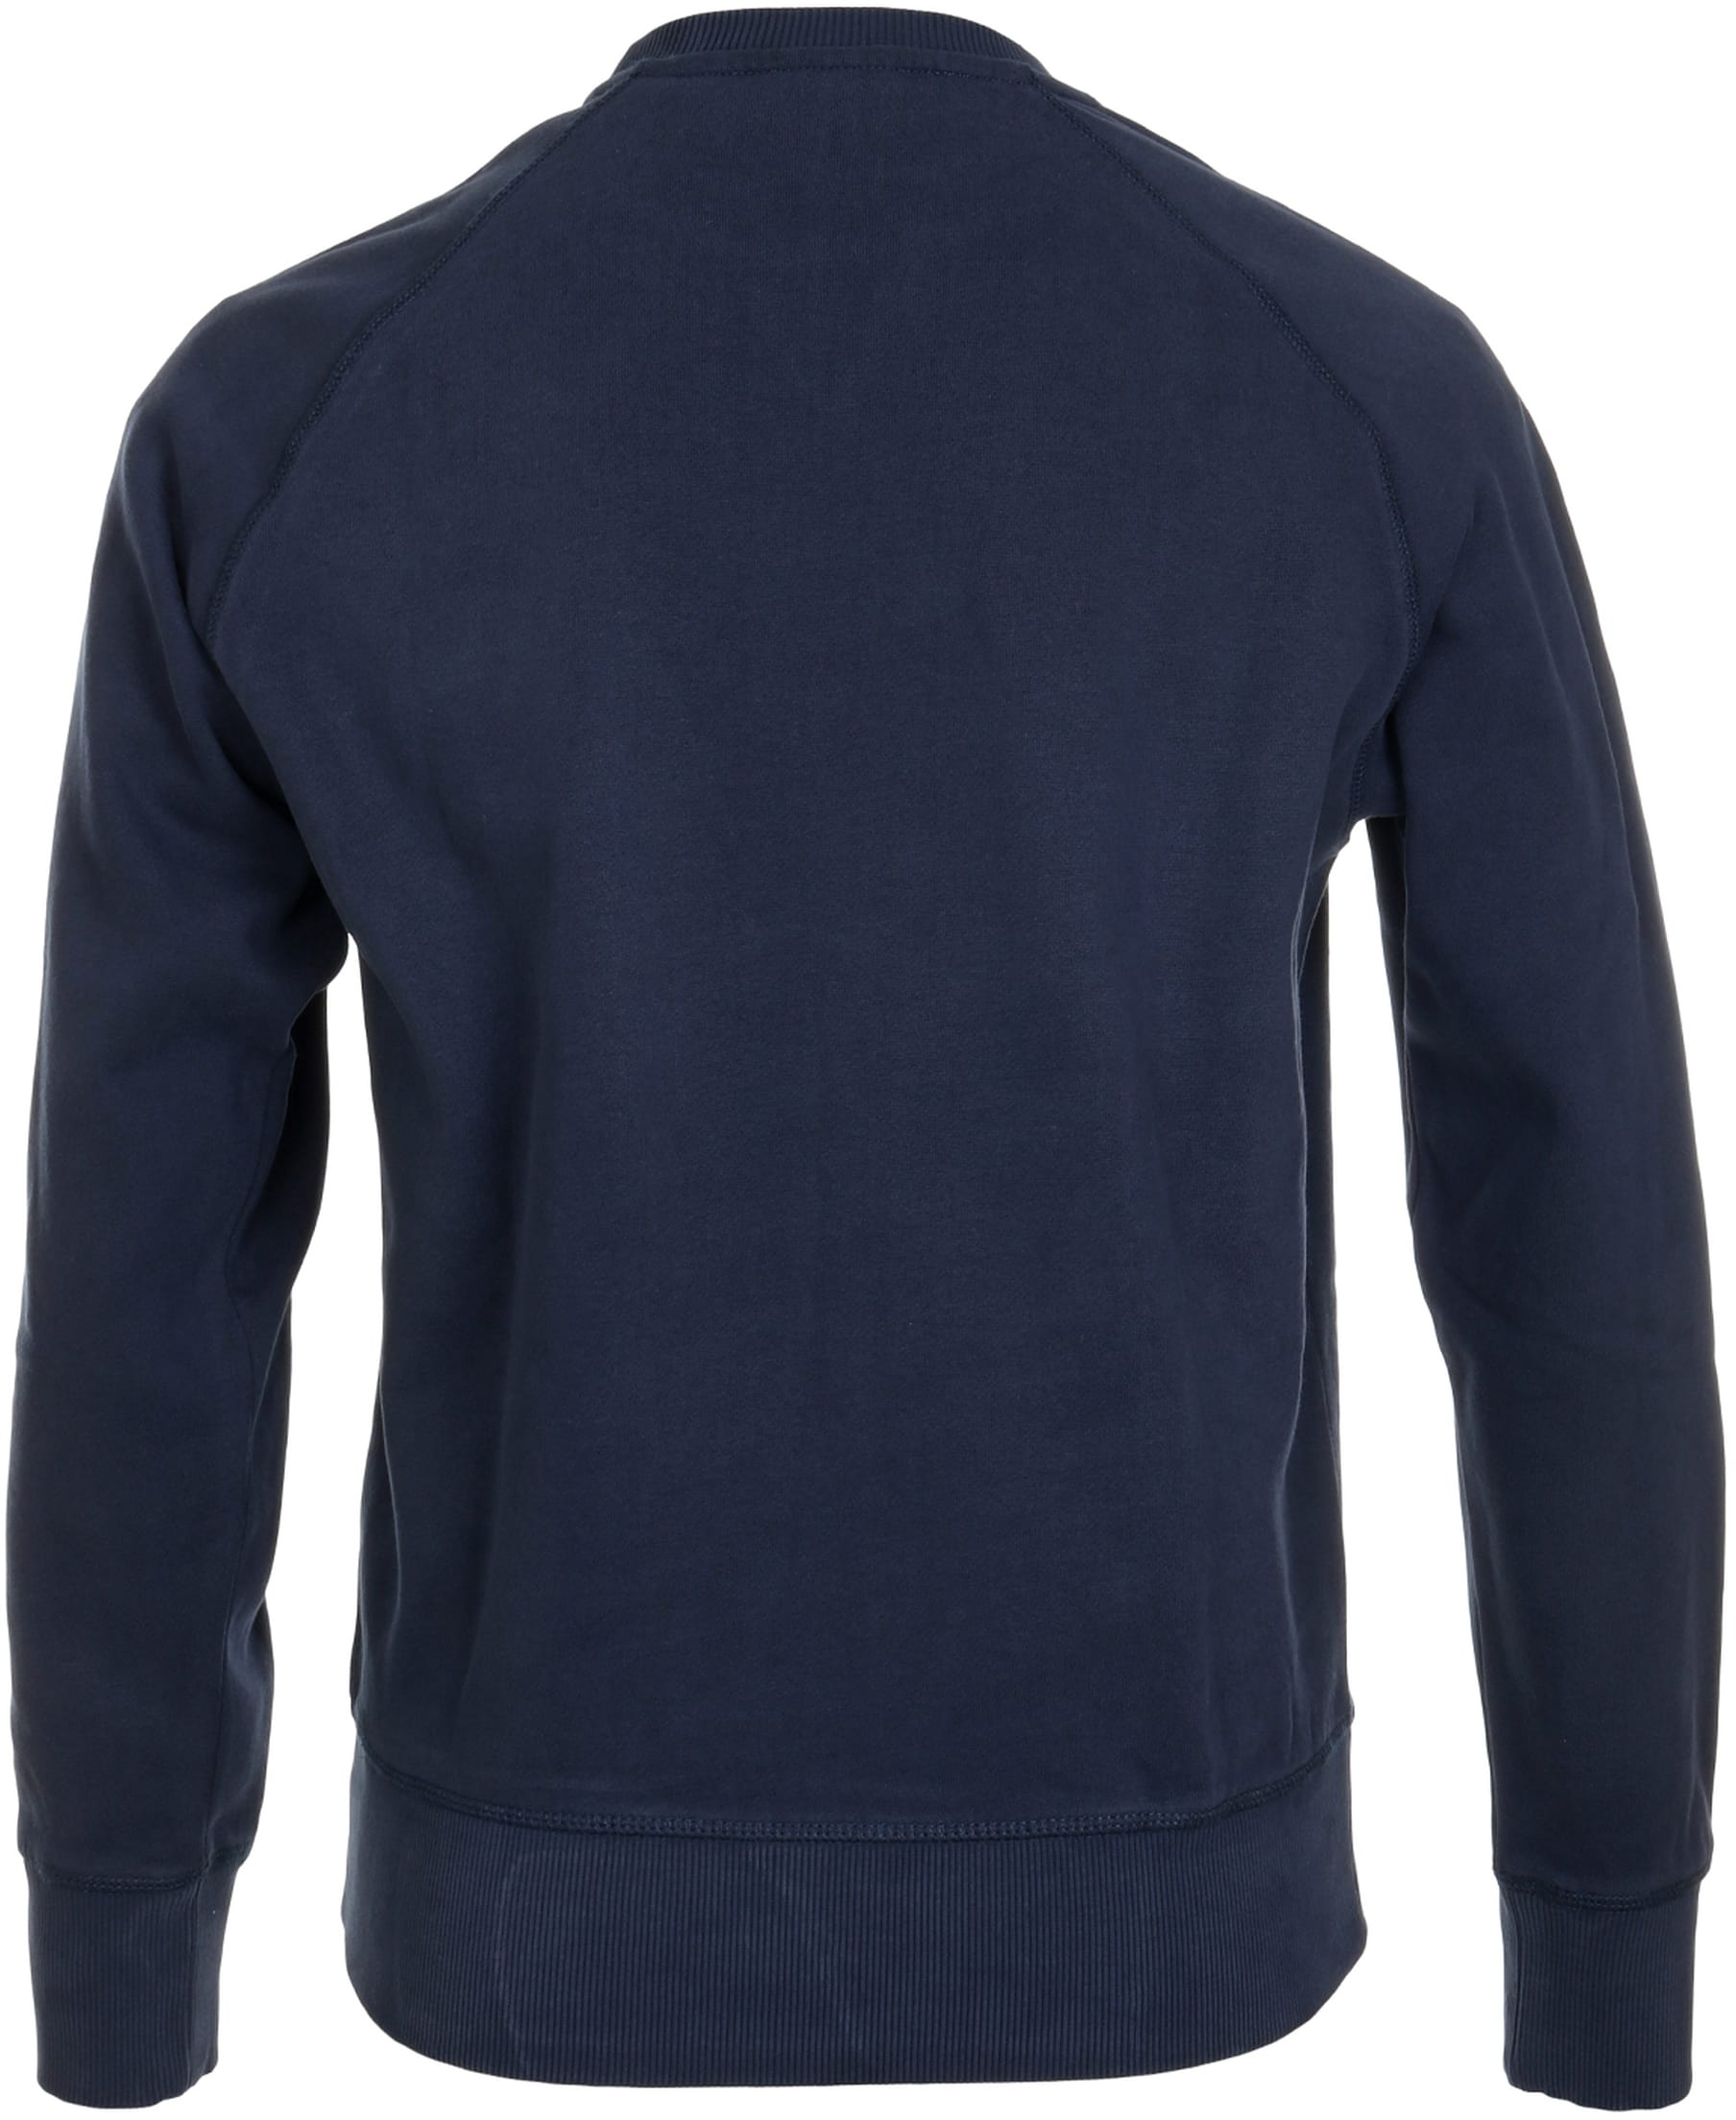 Timberland Sweater Navy Exeter foto 2